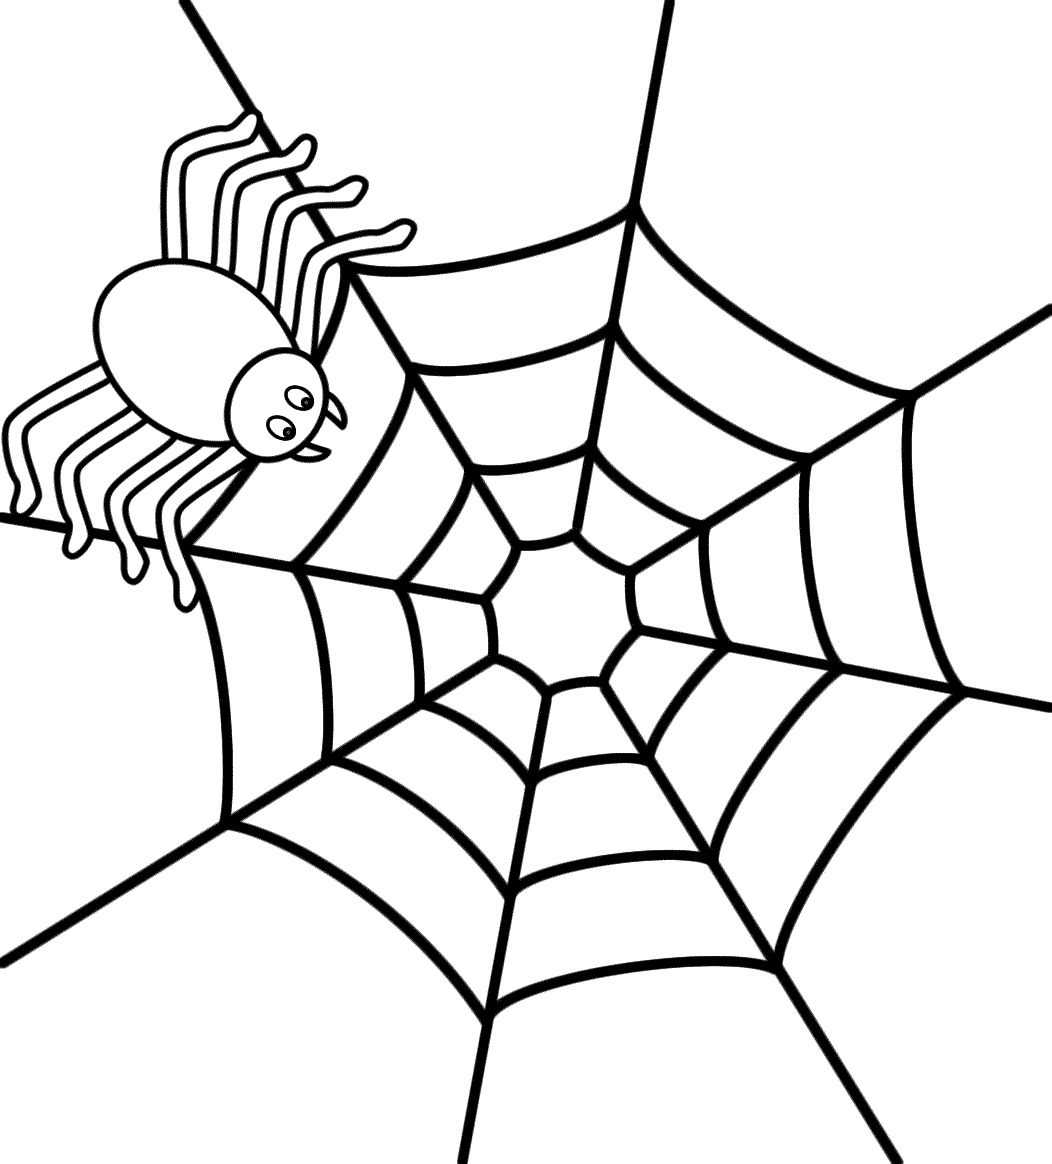 Spider on a web - Coloring Page (Halloween) | Template | Pinterest